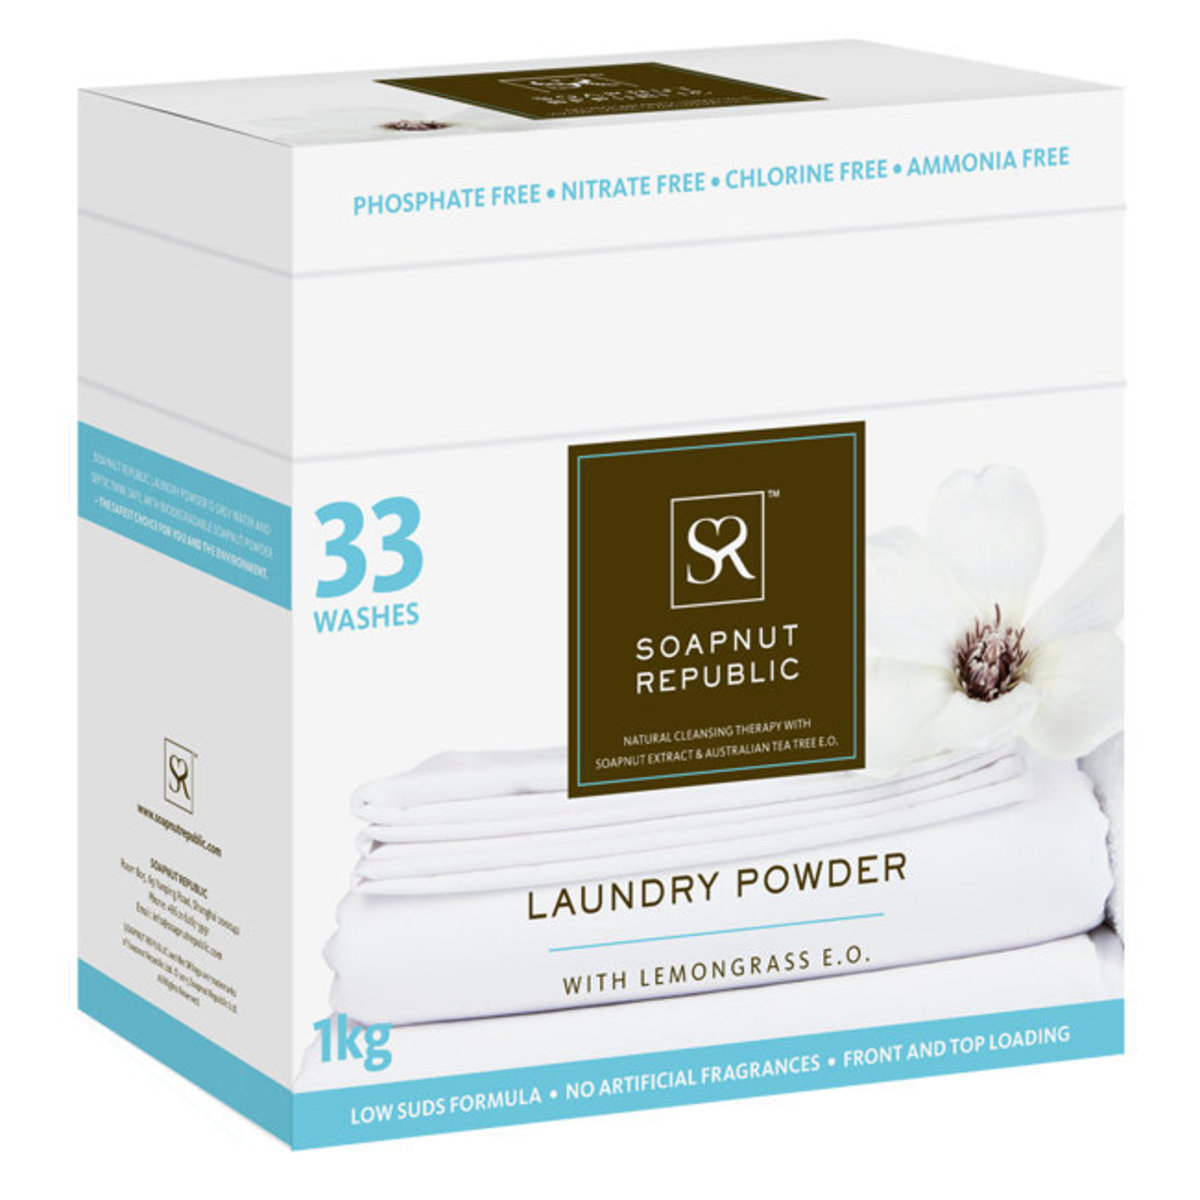 Laundry Powder - Fragrance Free